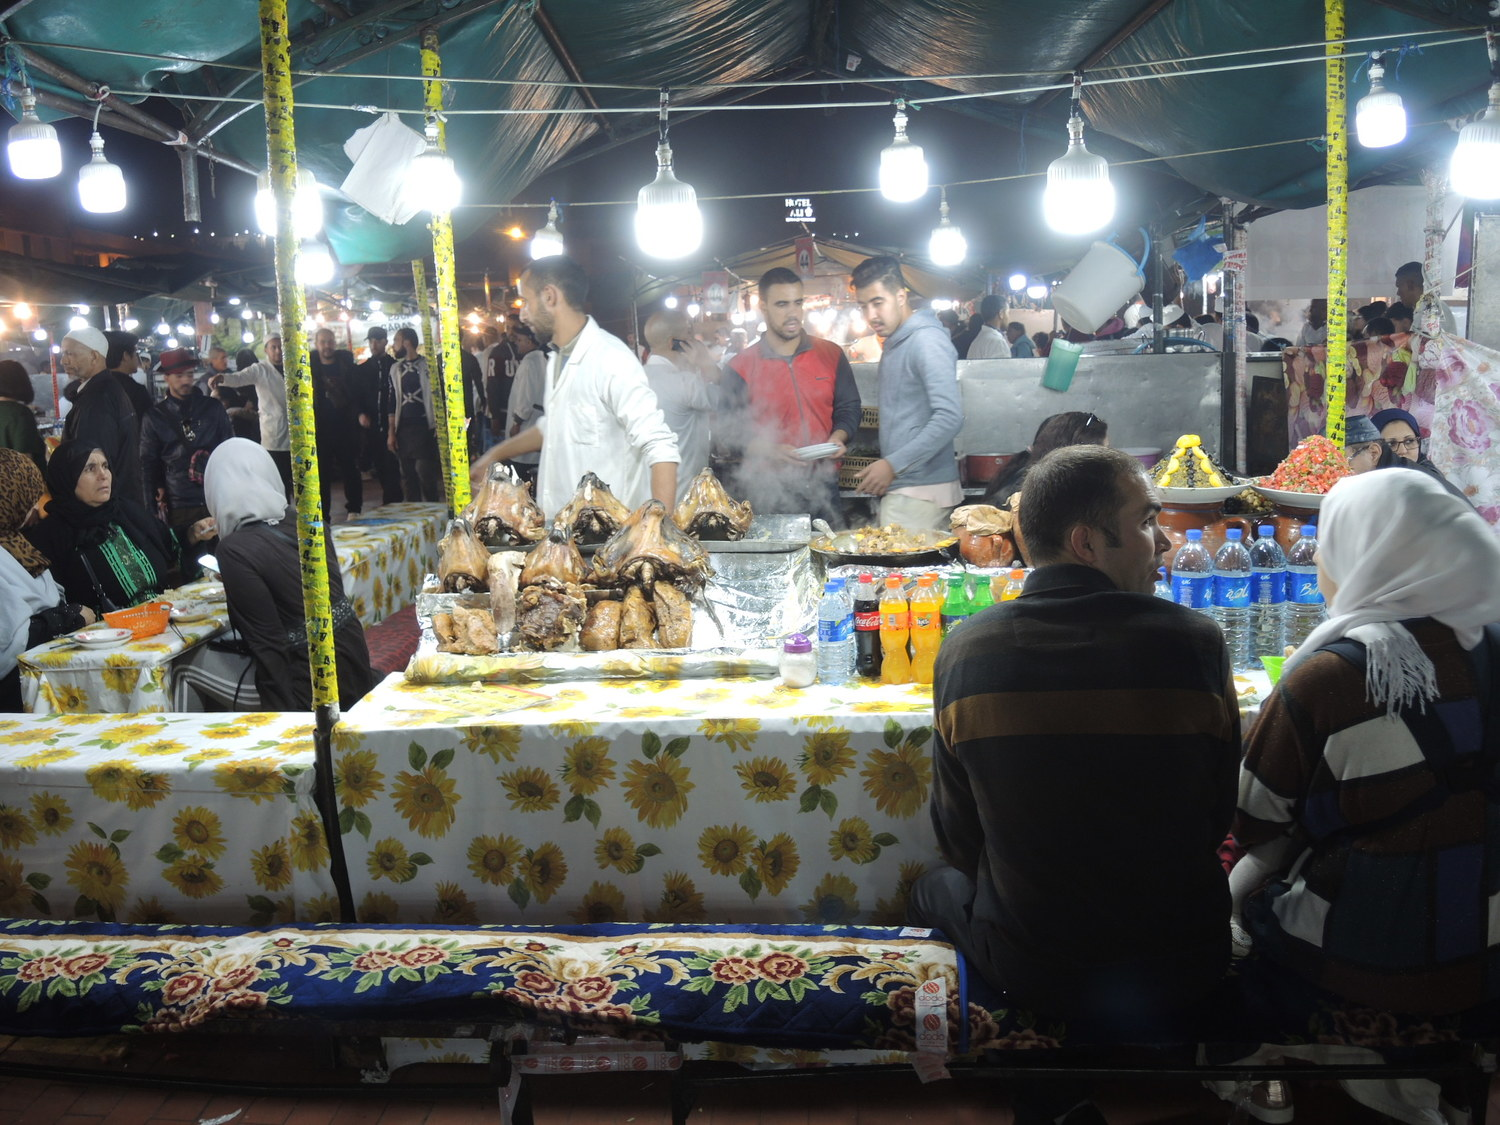 Jamaa El Fna market in Marrakech at night